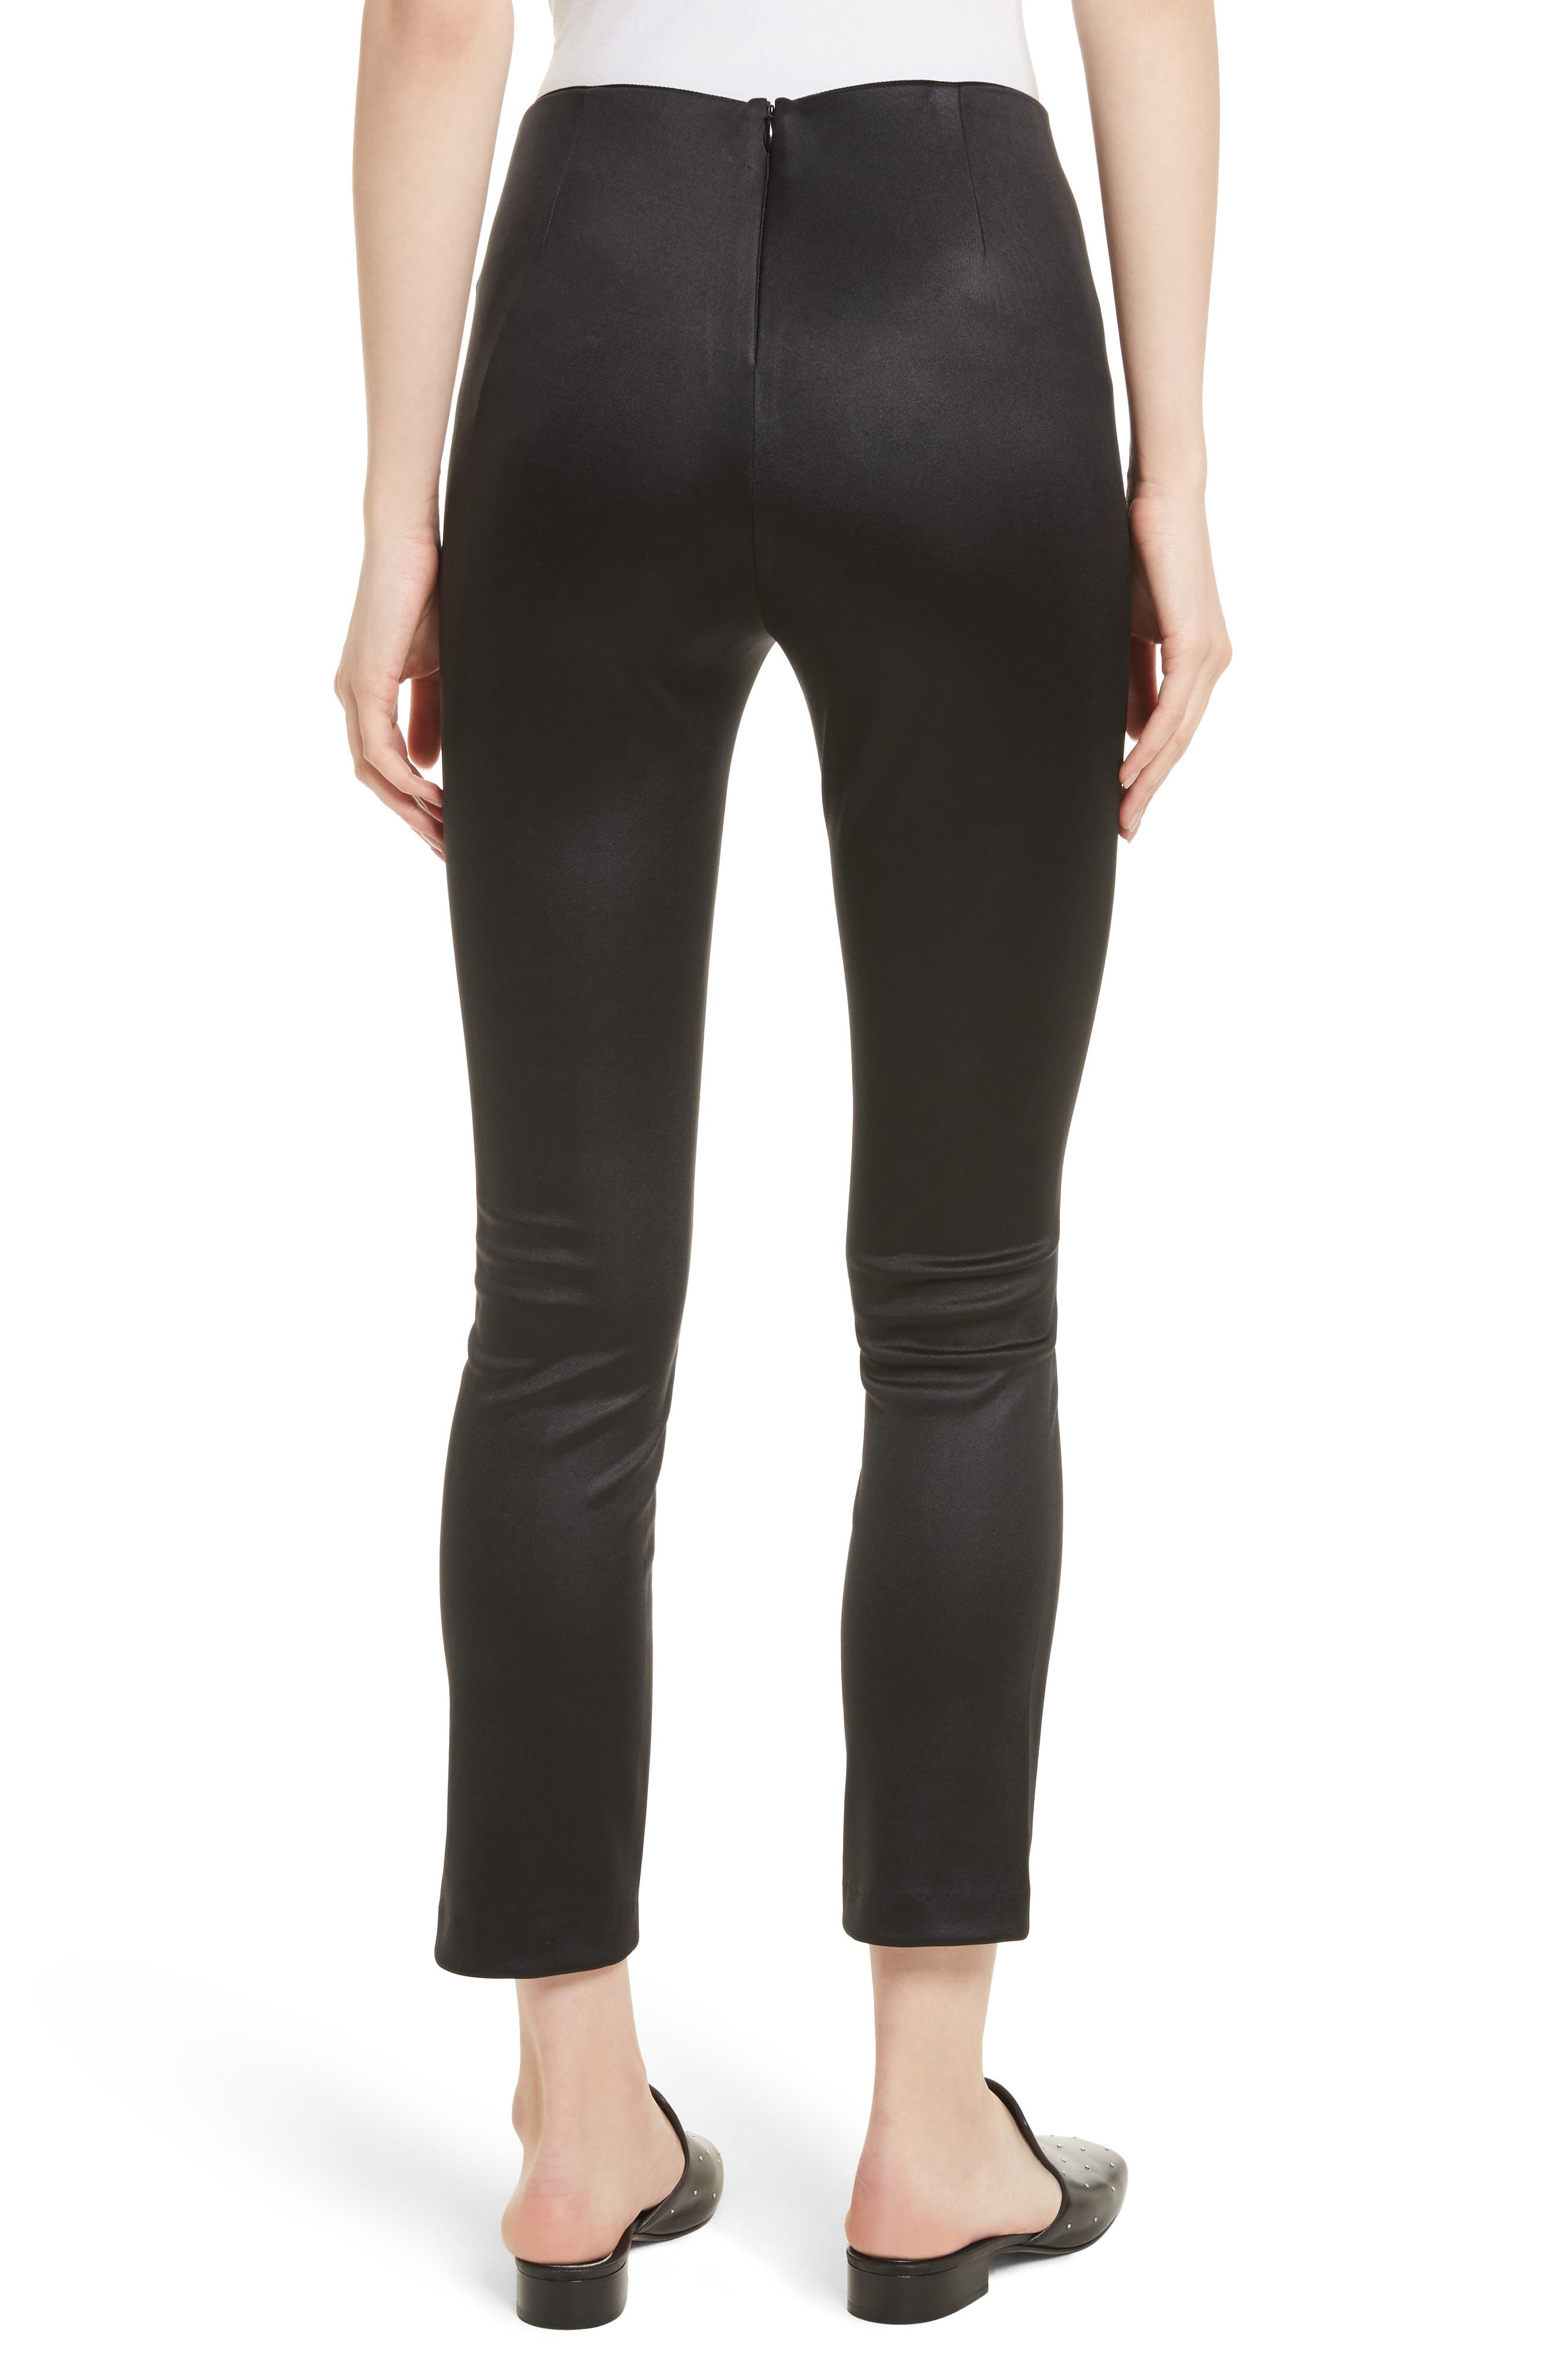 Simone Sateen Pants,                             Alternate thumbnail 2, color,                             Black